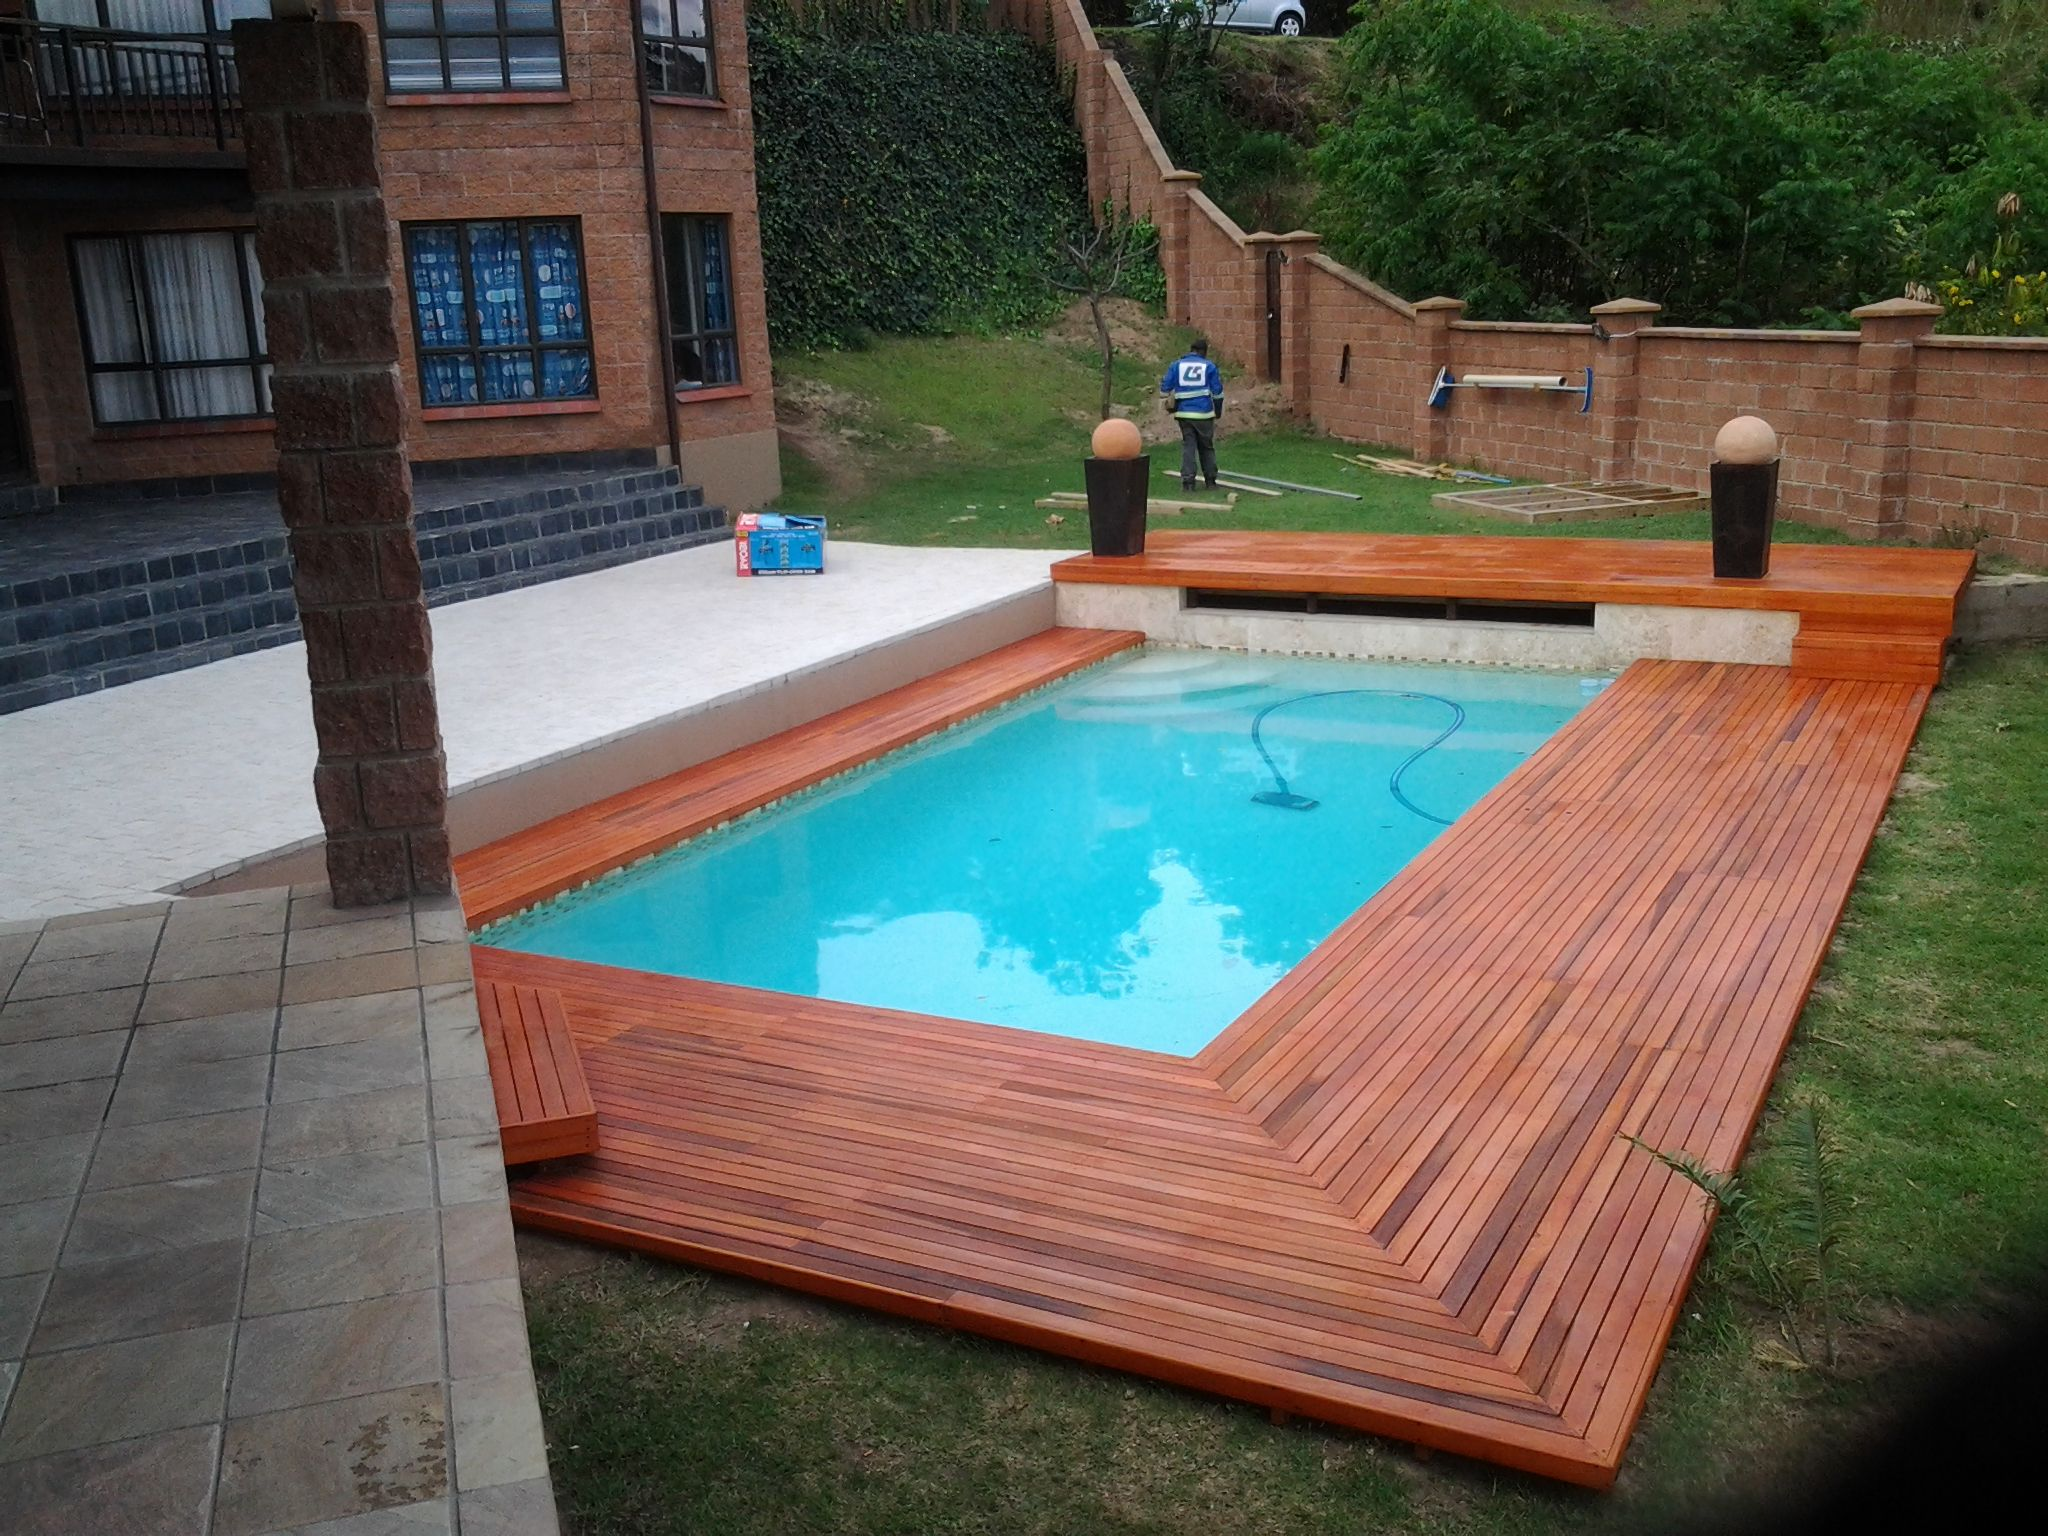 the idea here was to build a wooden sun deck that extended from the slasto of the pool area to meet the far side of the house